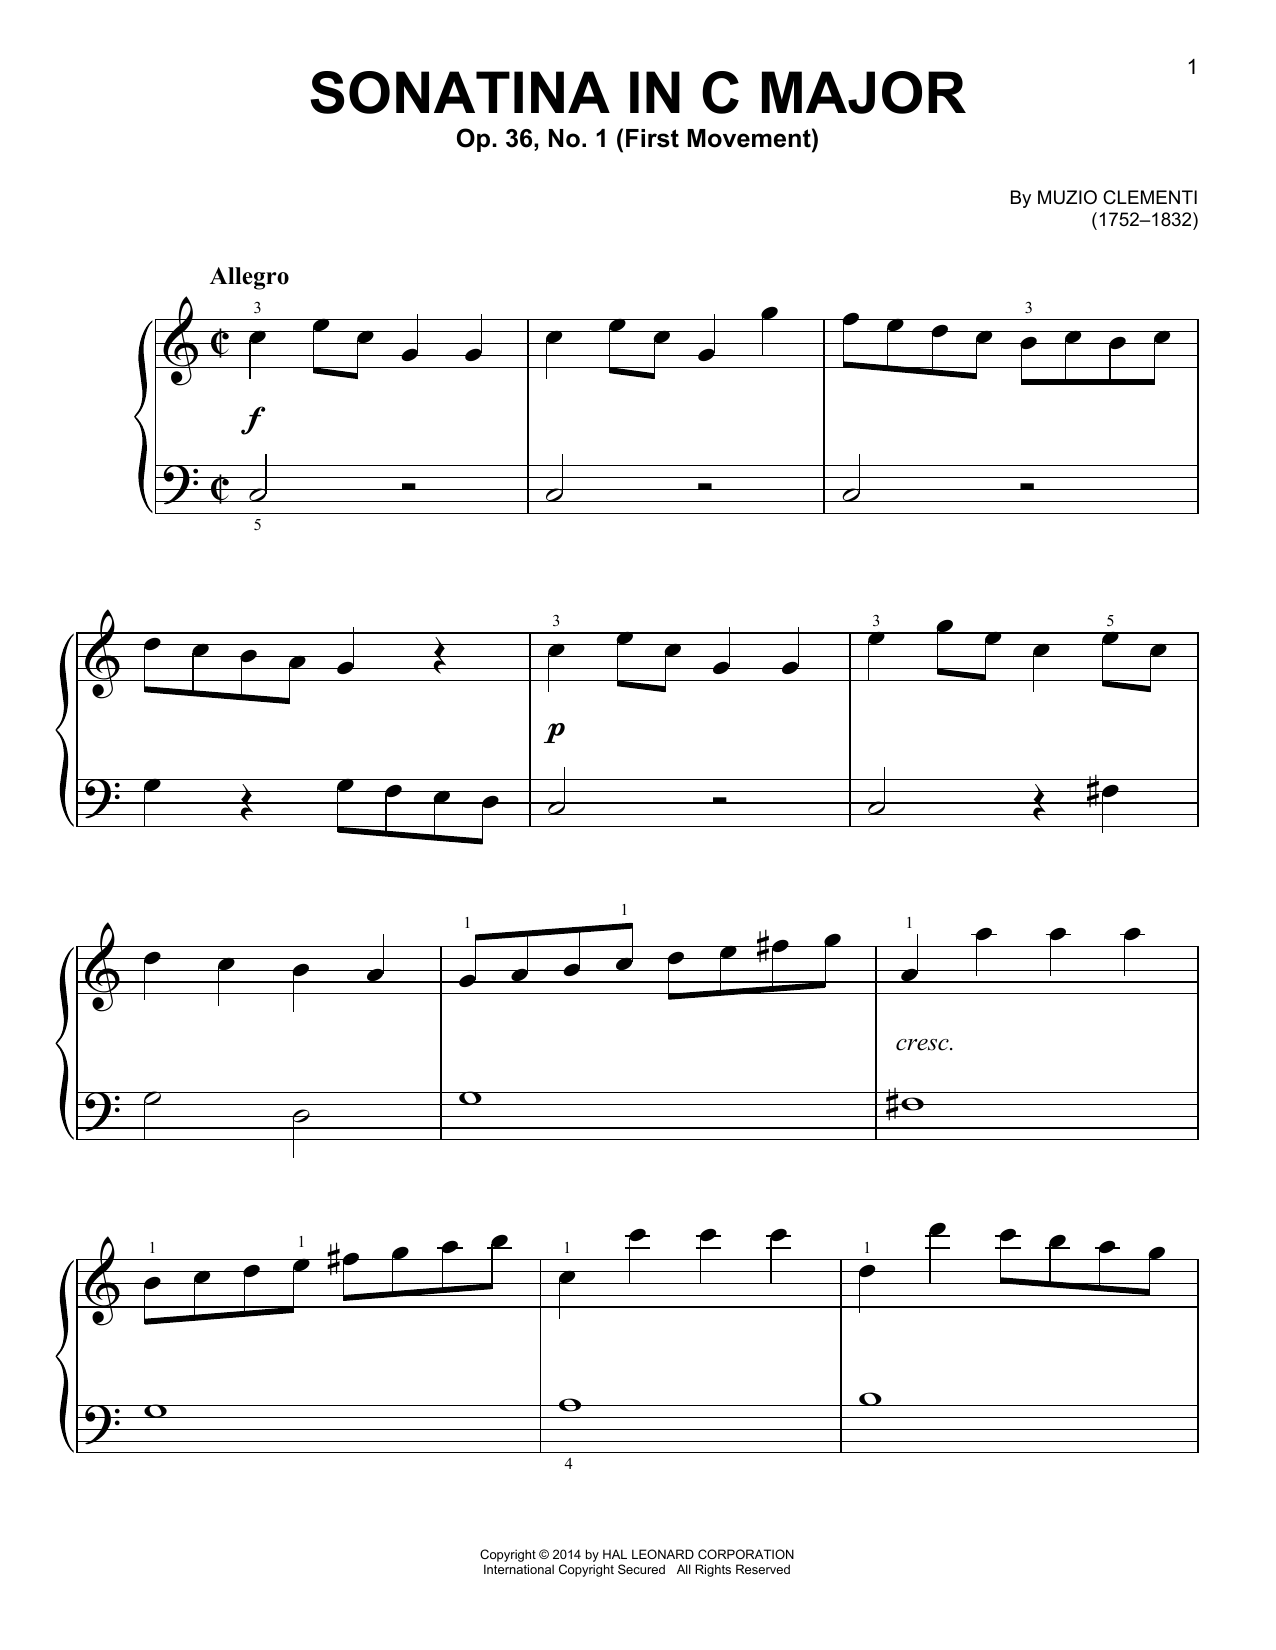 Sonatina in C Major, Op. 36, No. 1 Sheet Music